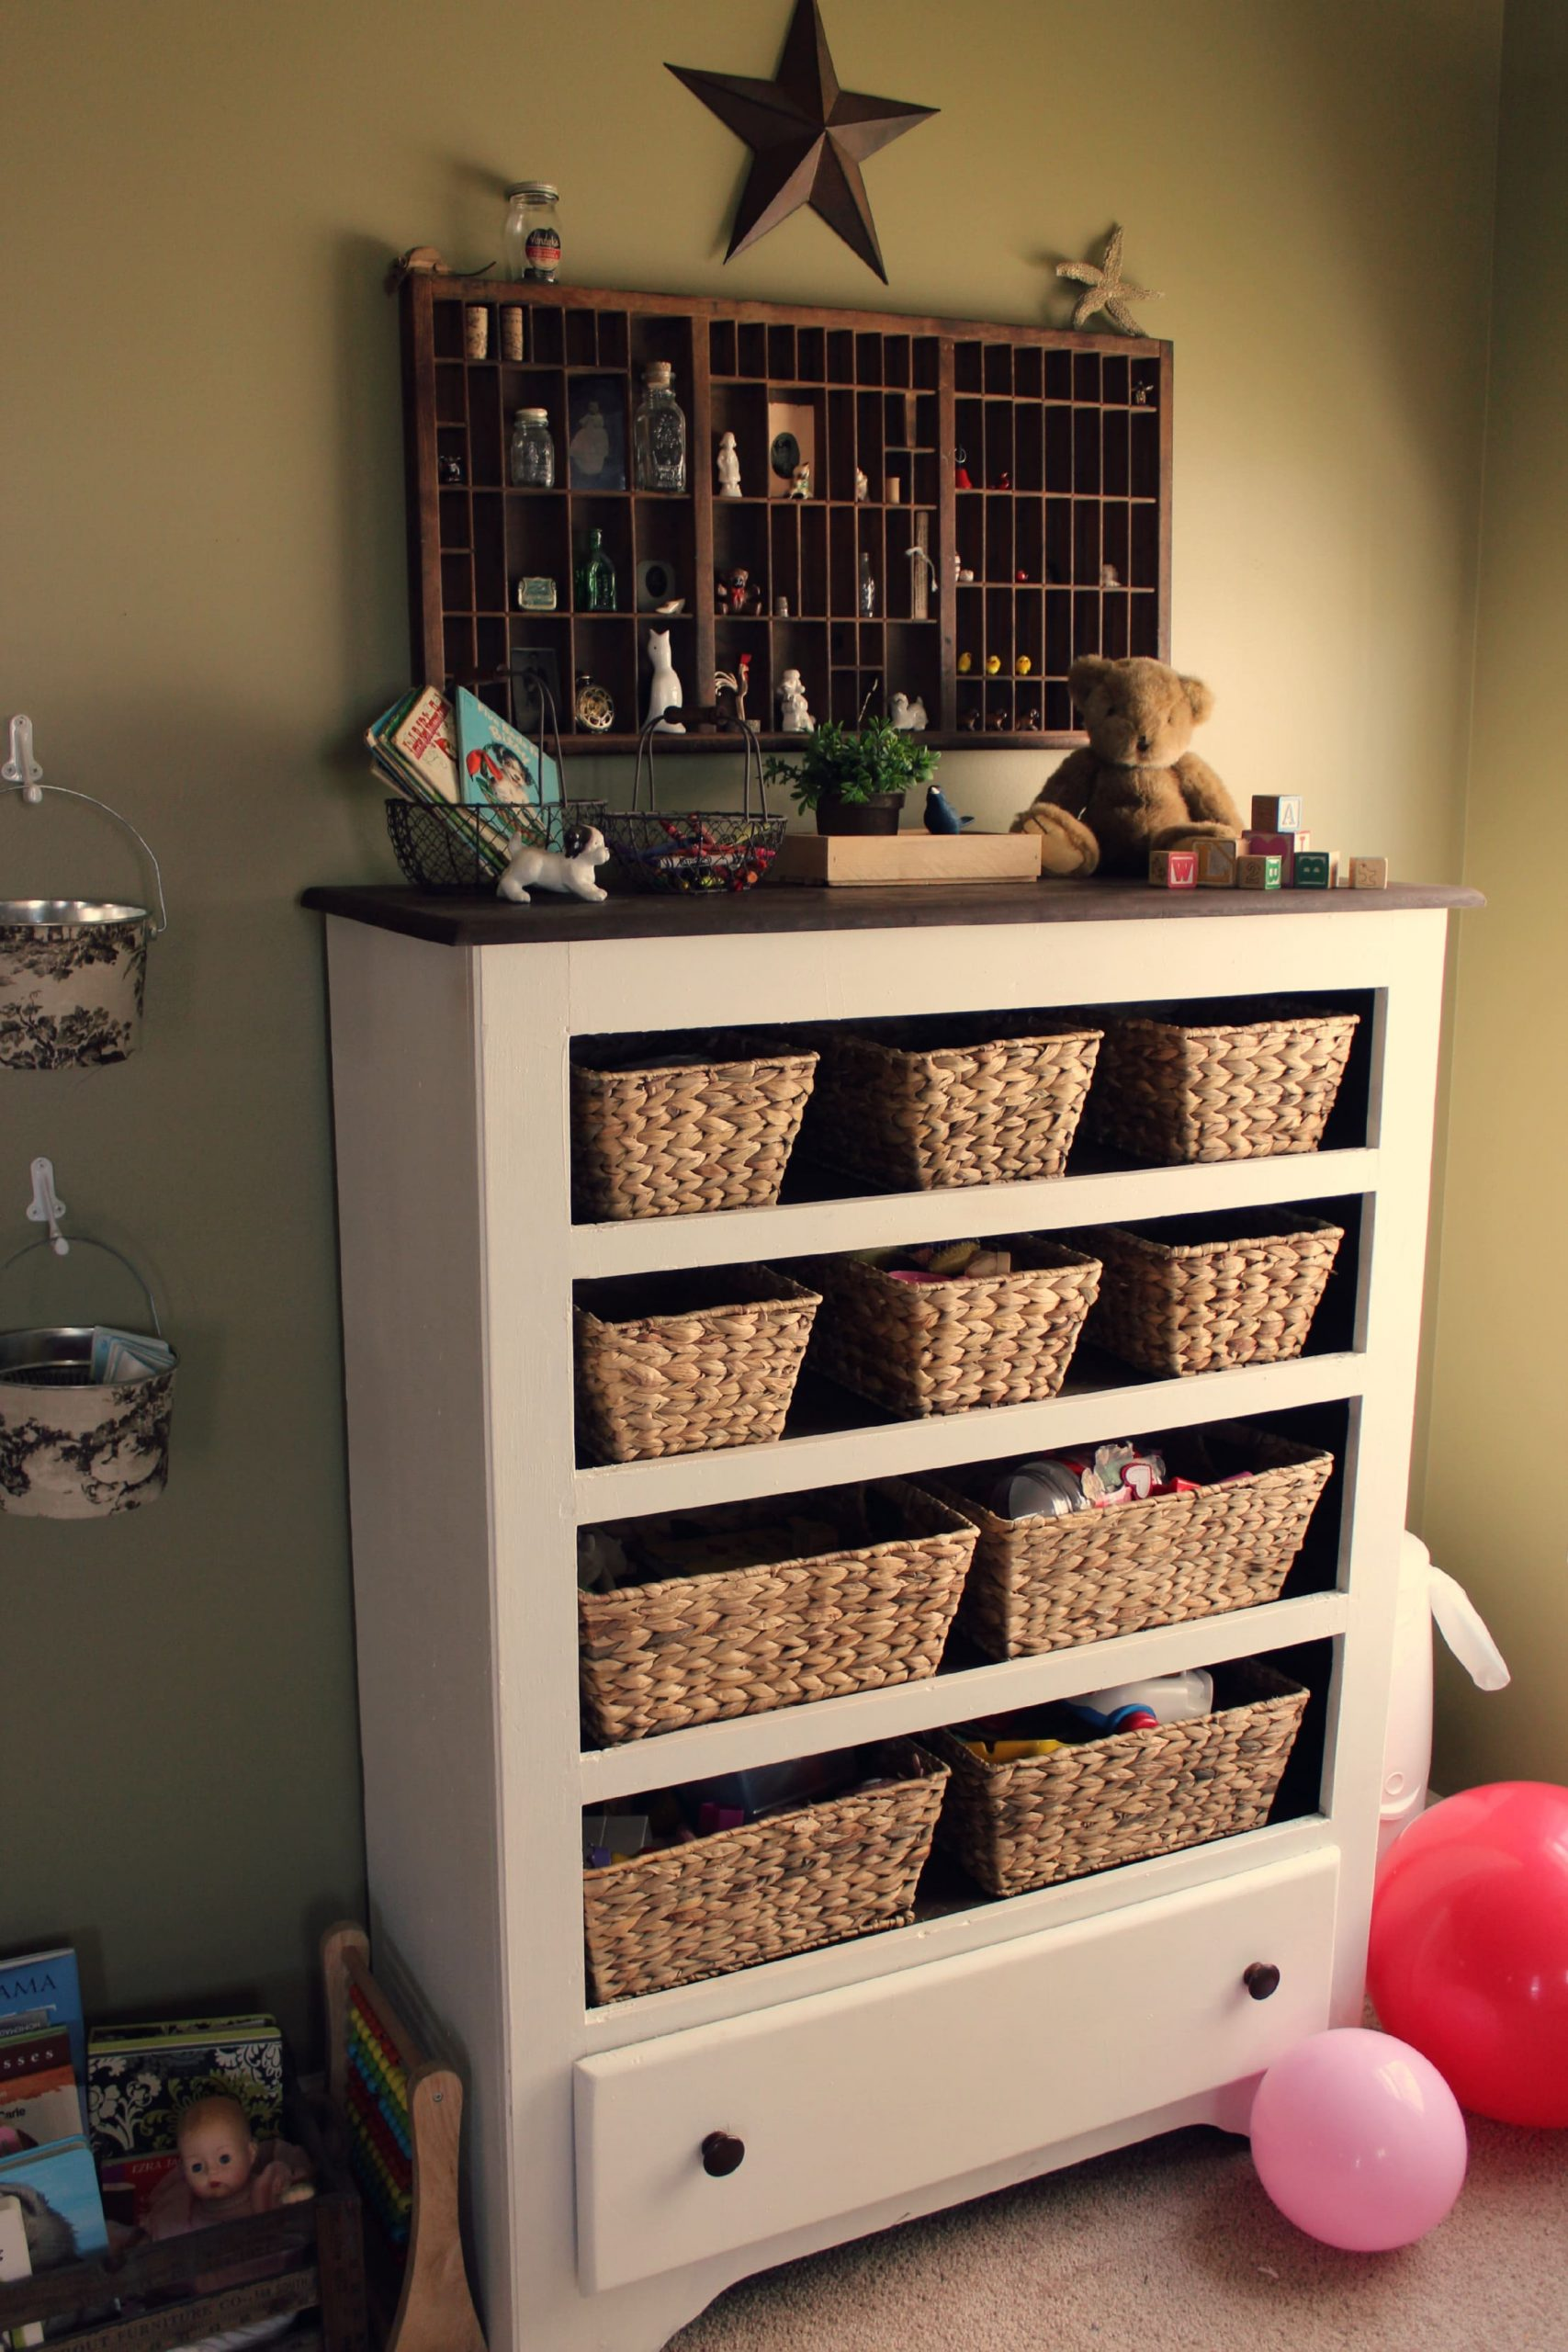 6.Simphome.com Baskets Instead of Drawers